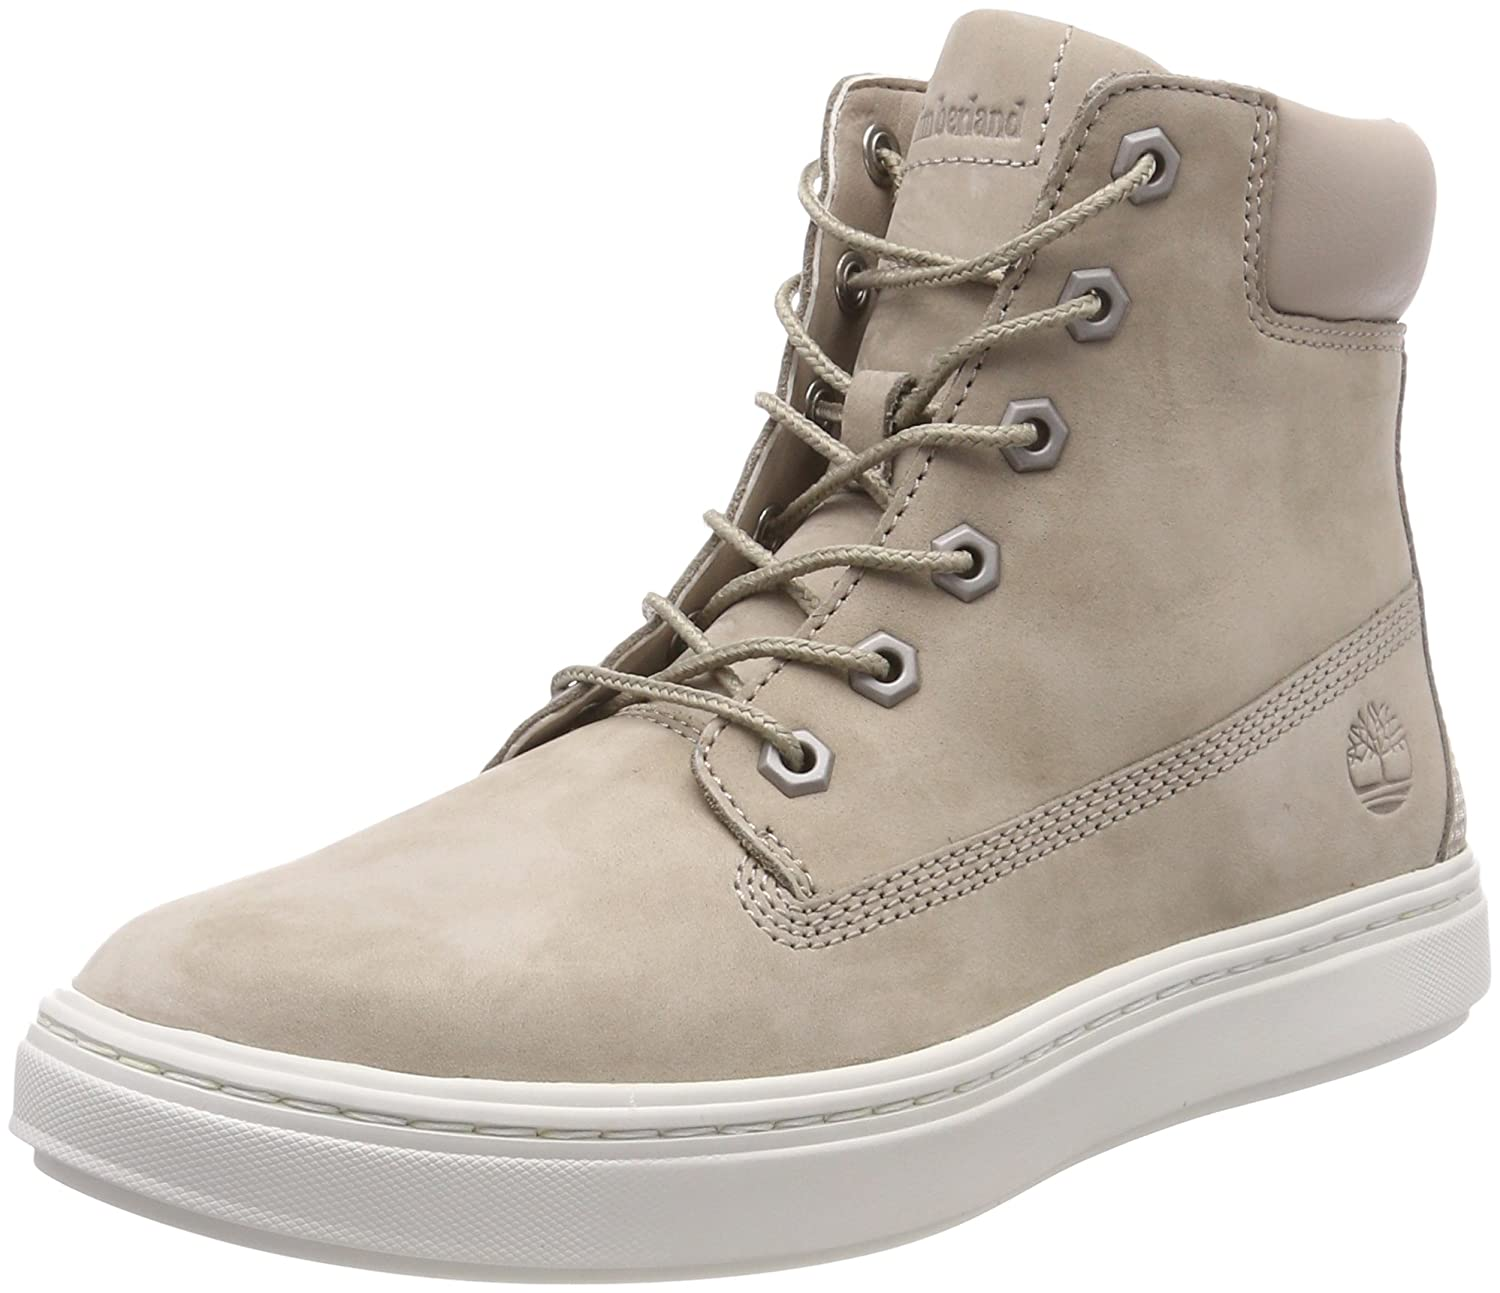 Timberland Londyn, Femme Bottes Femme Marron (Simply Taupe L47) Naturebuck B000LSXRV0 L47) c0fa656 - piero.space